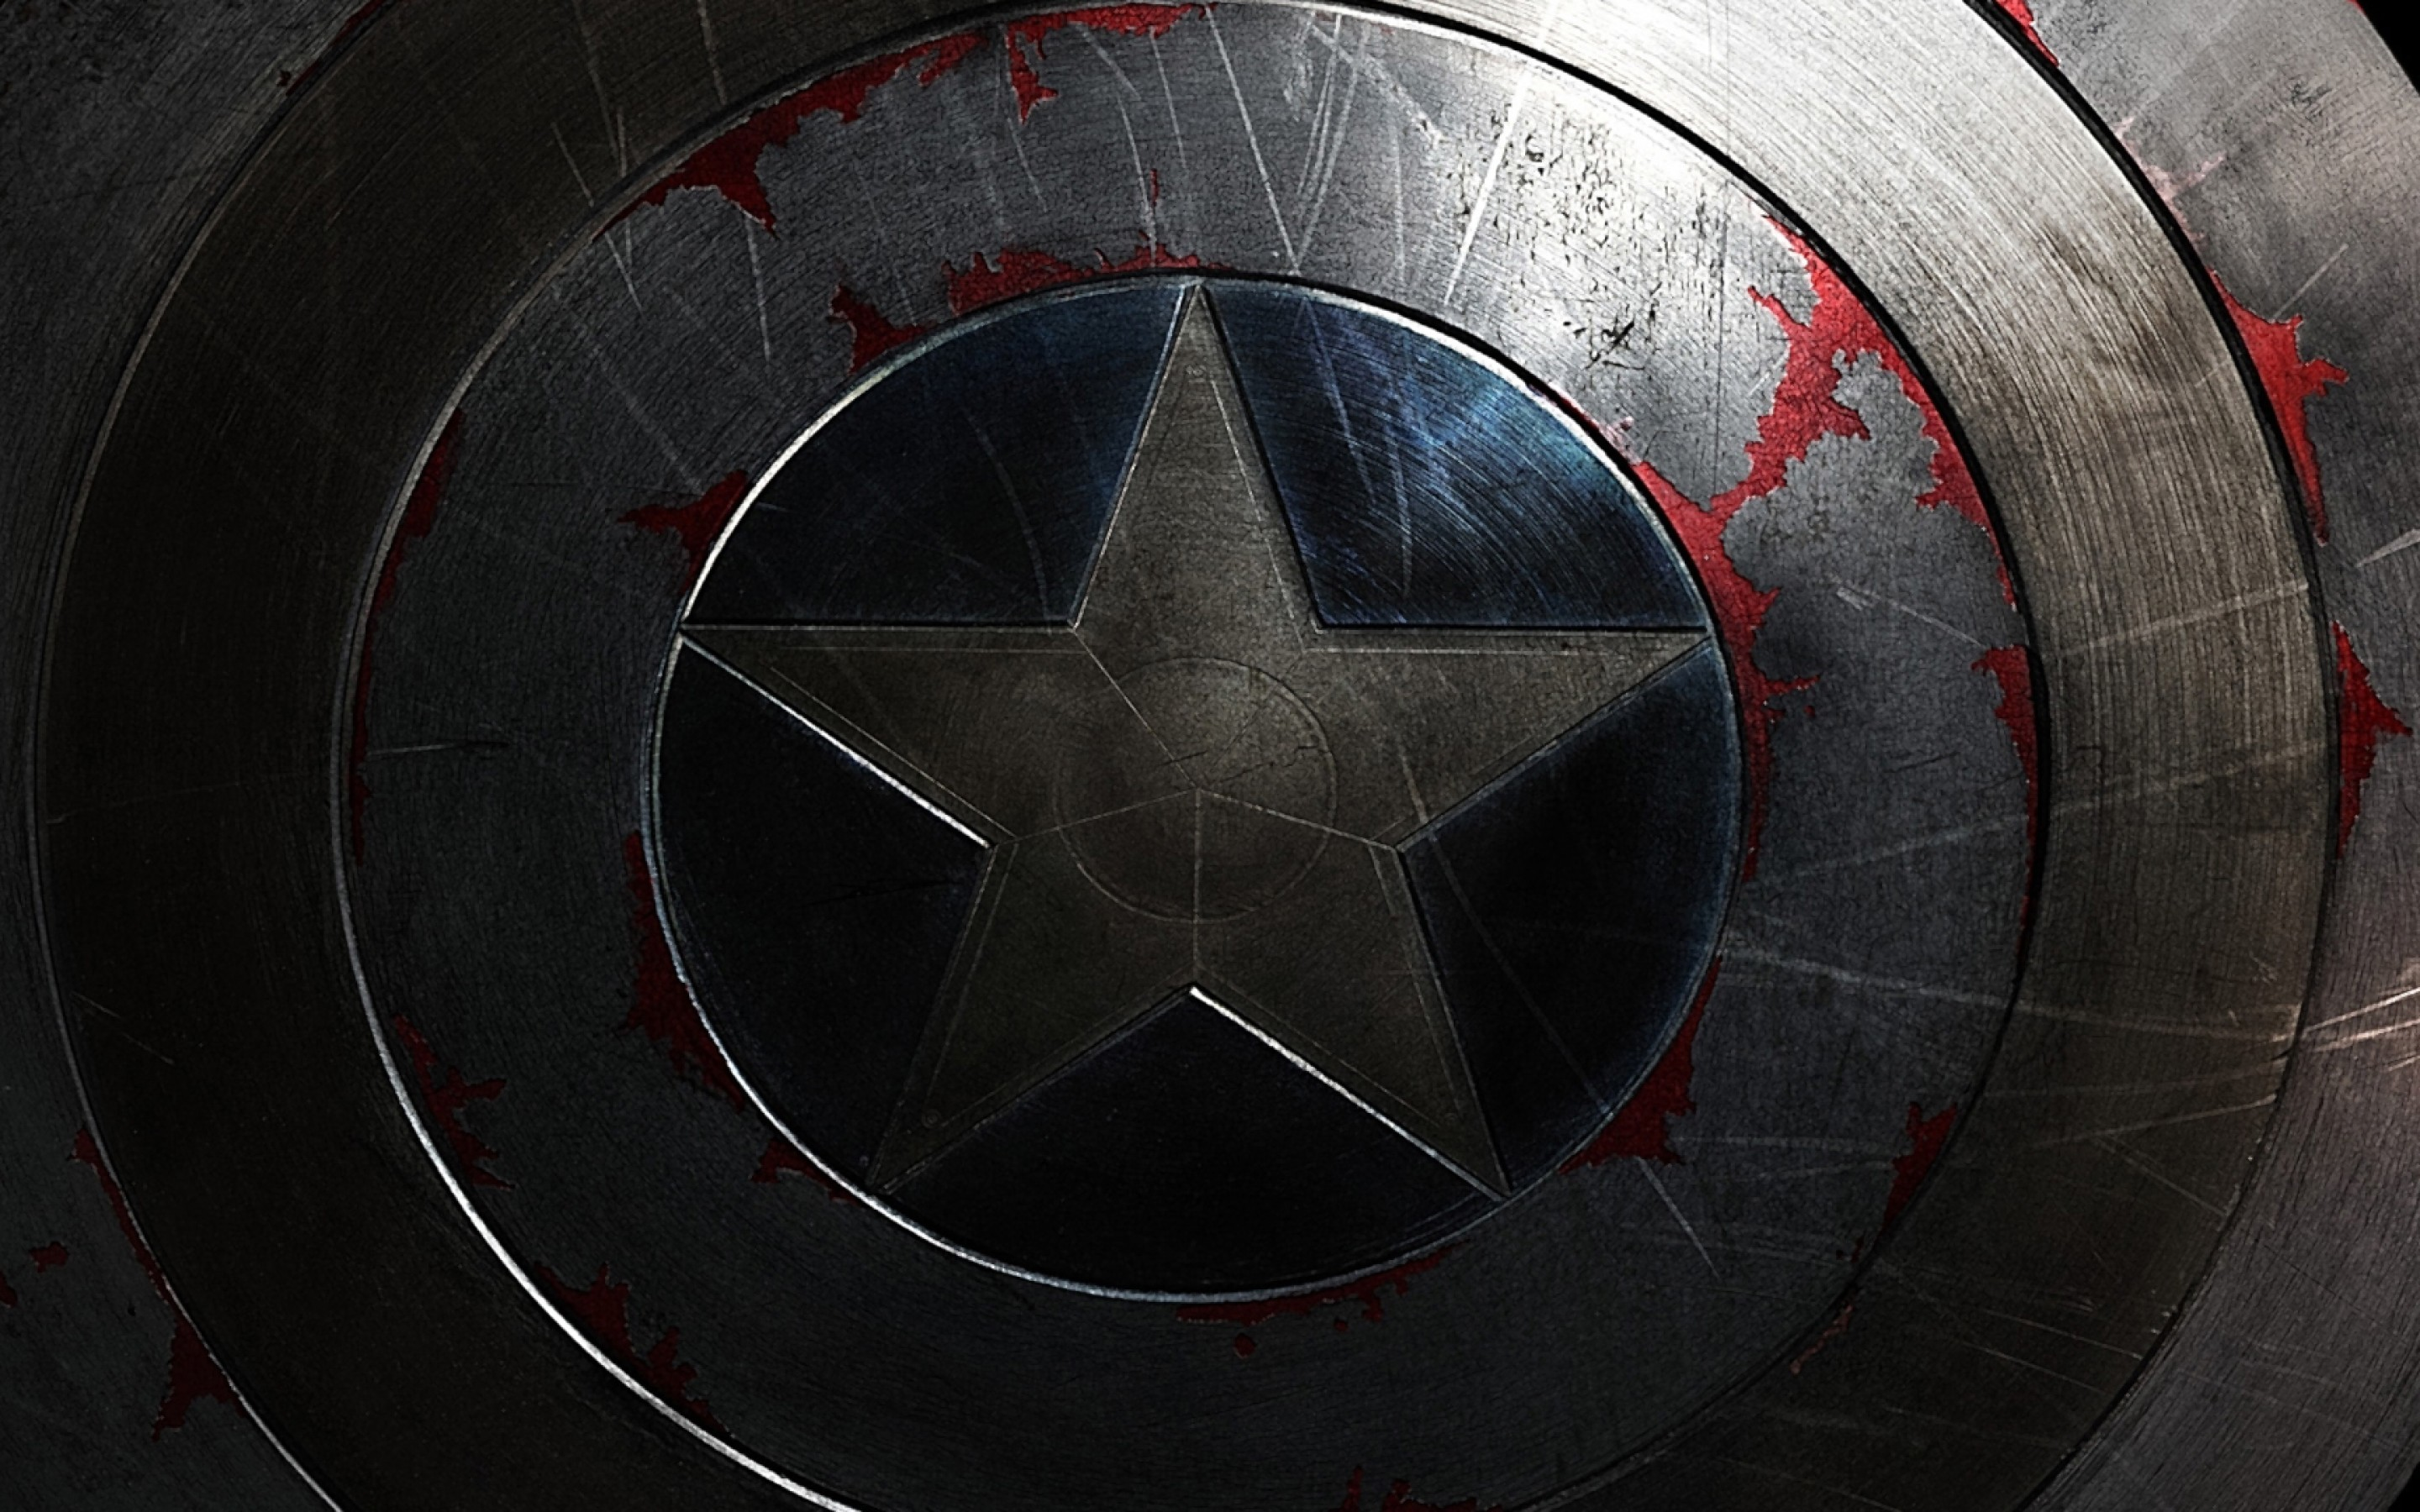 2880x1800 100+ Captain America Shield Wallpaper Marvel - SiWallpaperHD 36711